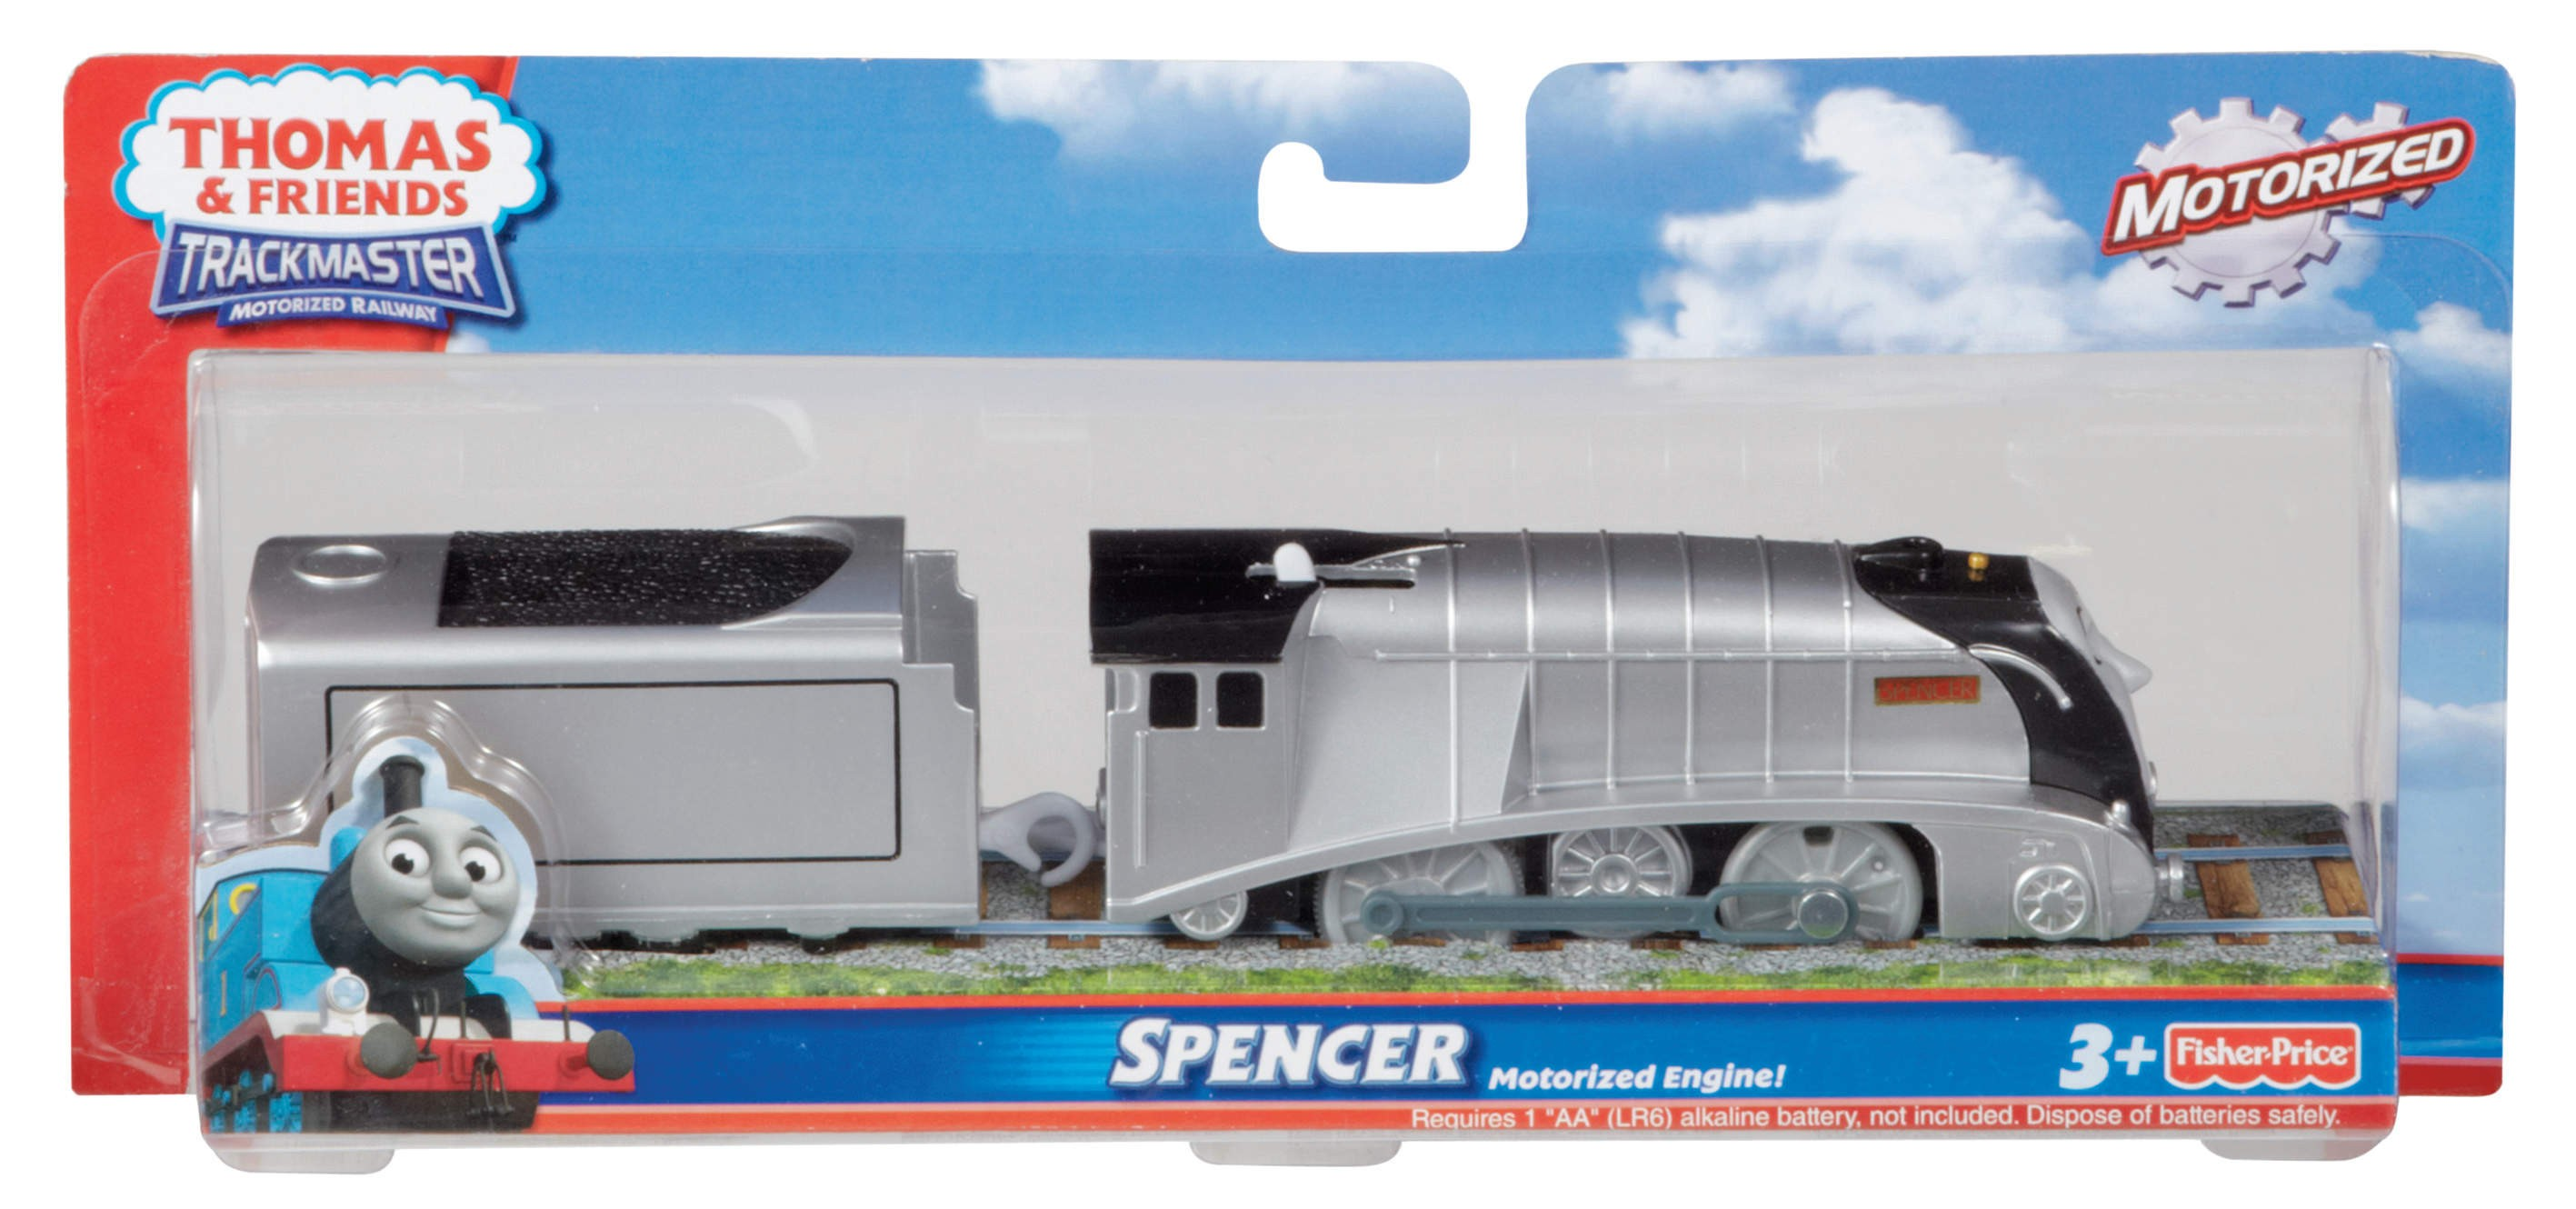 Spencer big friends trackmaster best educational infant toys stores